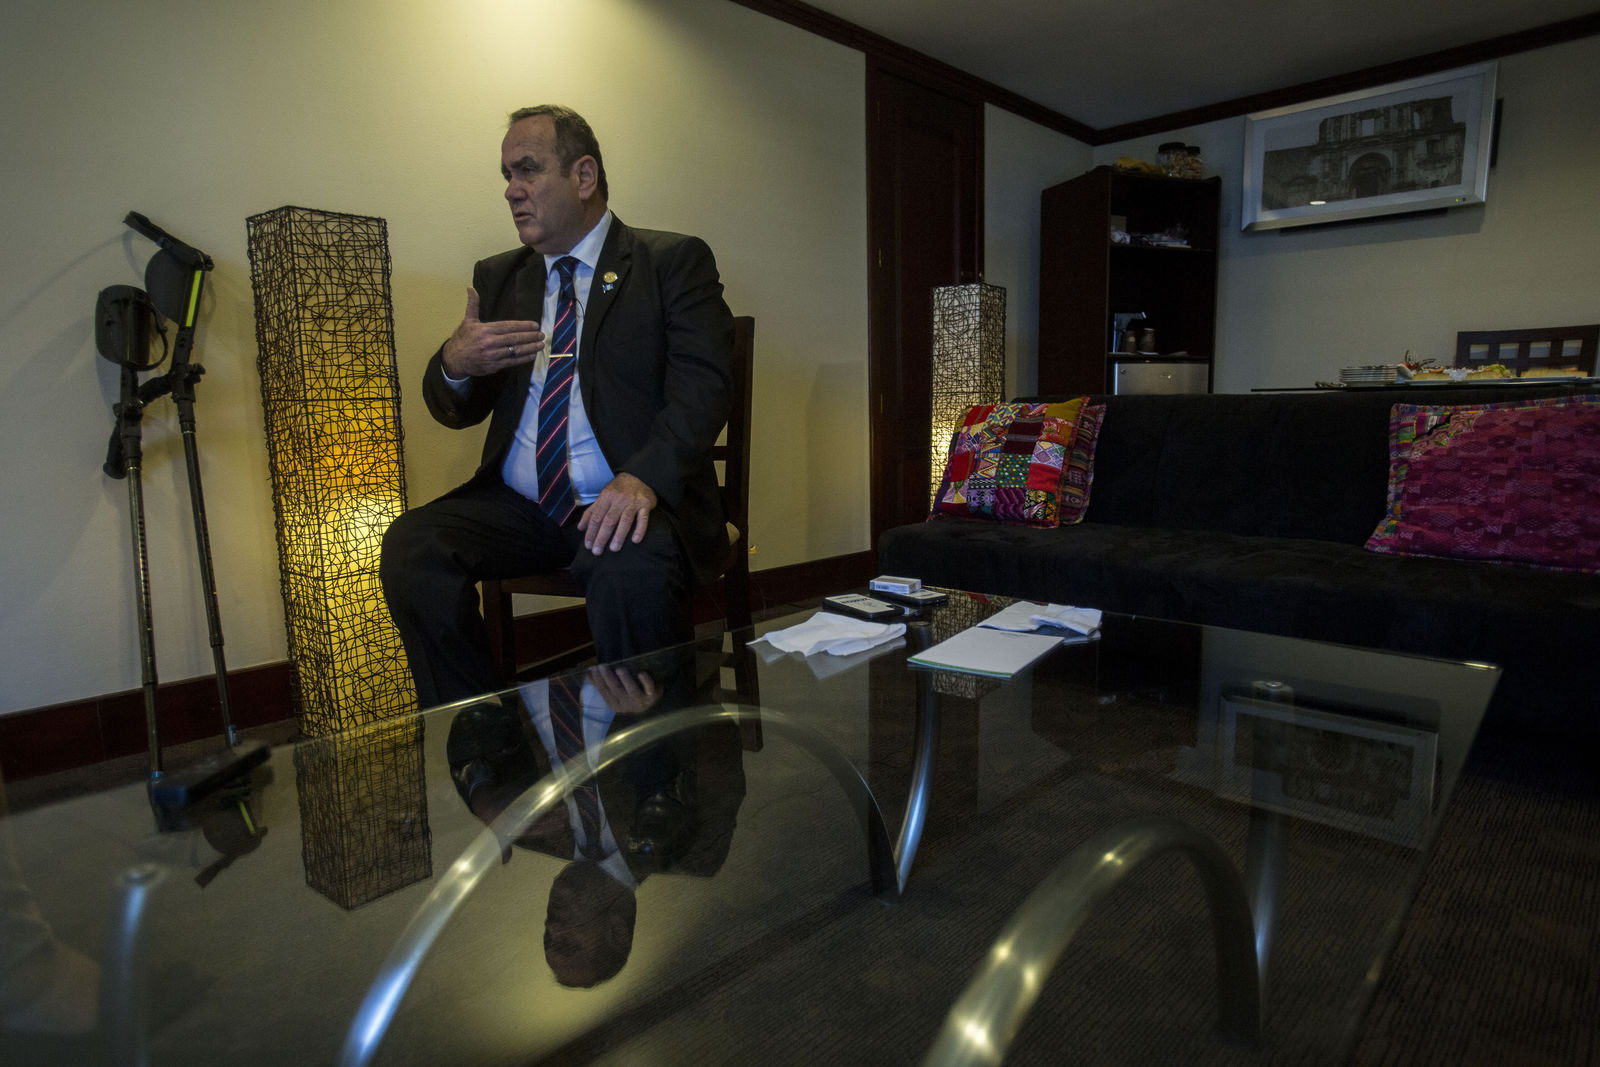 Guatemala's President-elect Alejandro Giammattei gives an interview in Guatemala City, Tuesday, Aug. 13, 2019.  (AP Photo/Oliver de Ros)